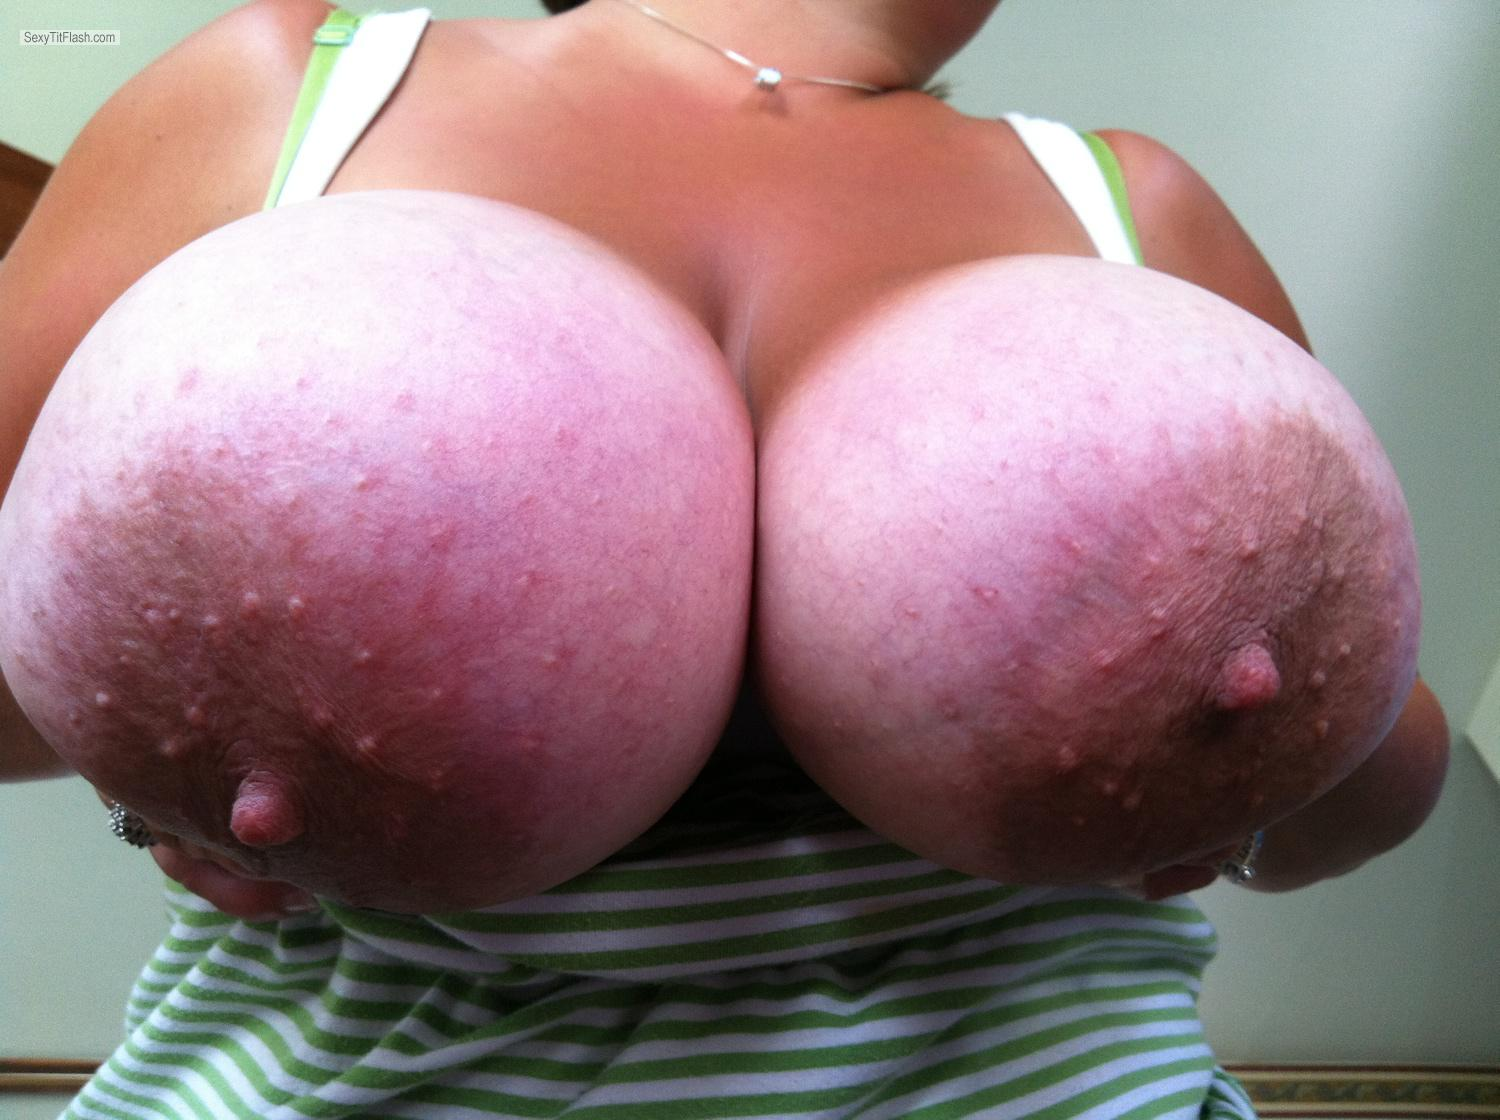 Tit Flash: Extremely Big Tits By IPhone - Mandy6980 from United States